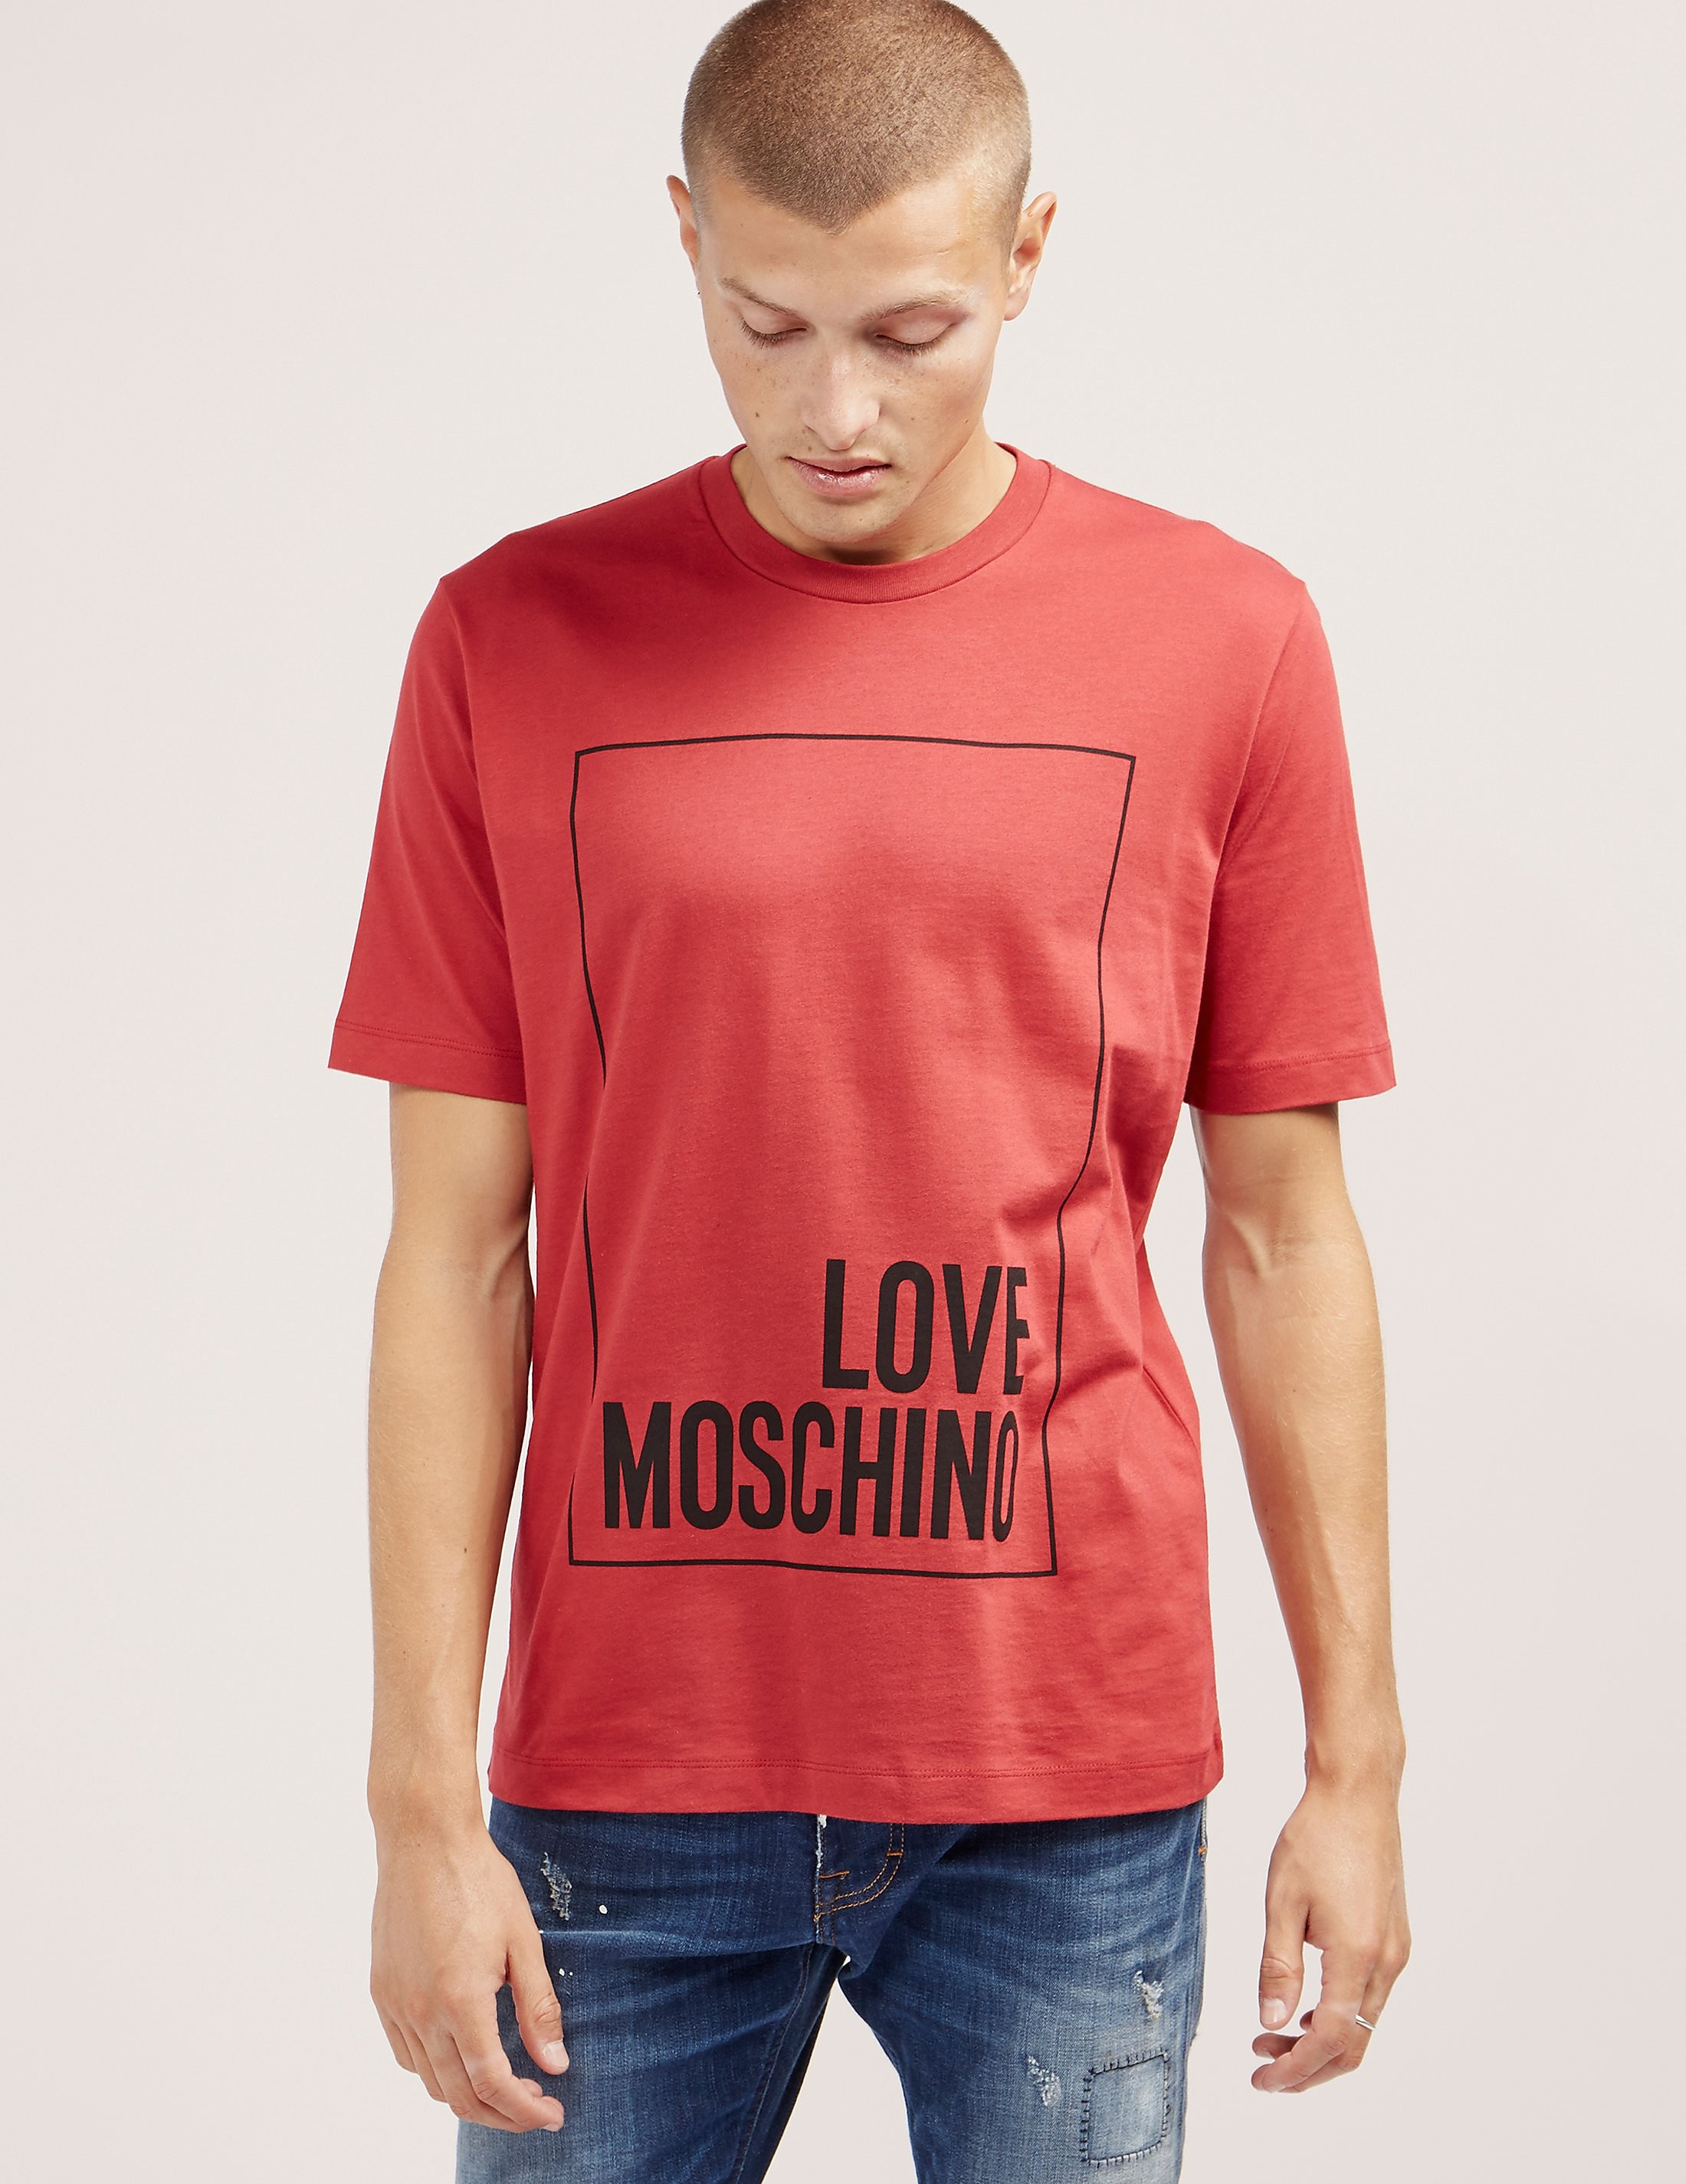 Love Moschino Large Box Short Sleeve T-Shirt